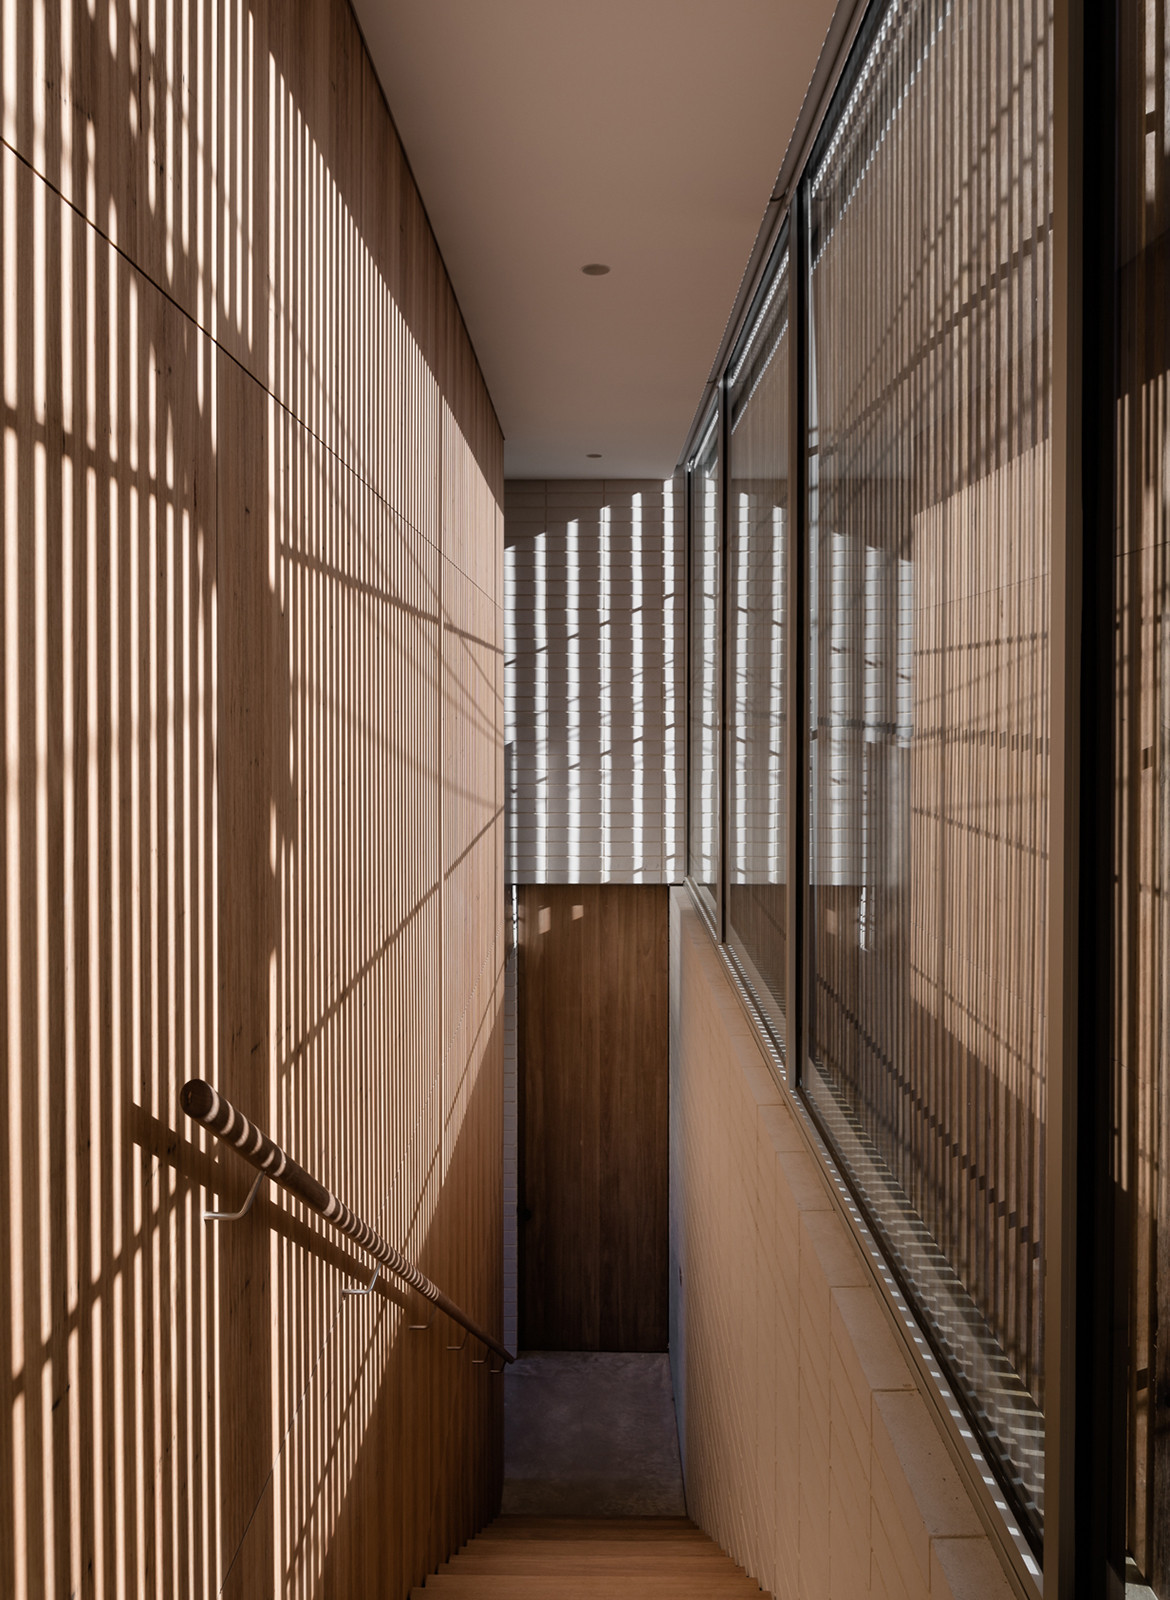 Edsall Street Ritz&Ghougassian CC Tom Blachford staircase natural light timber battens